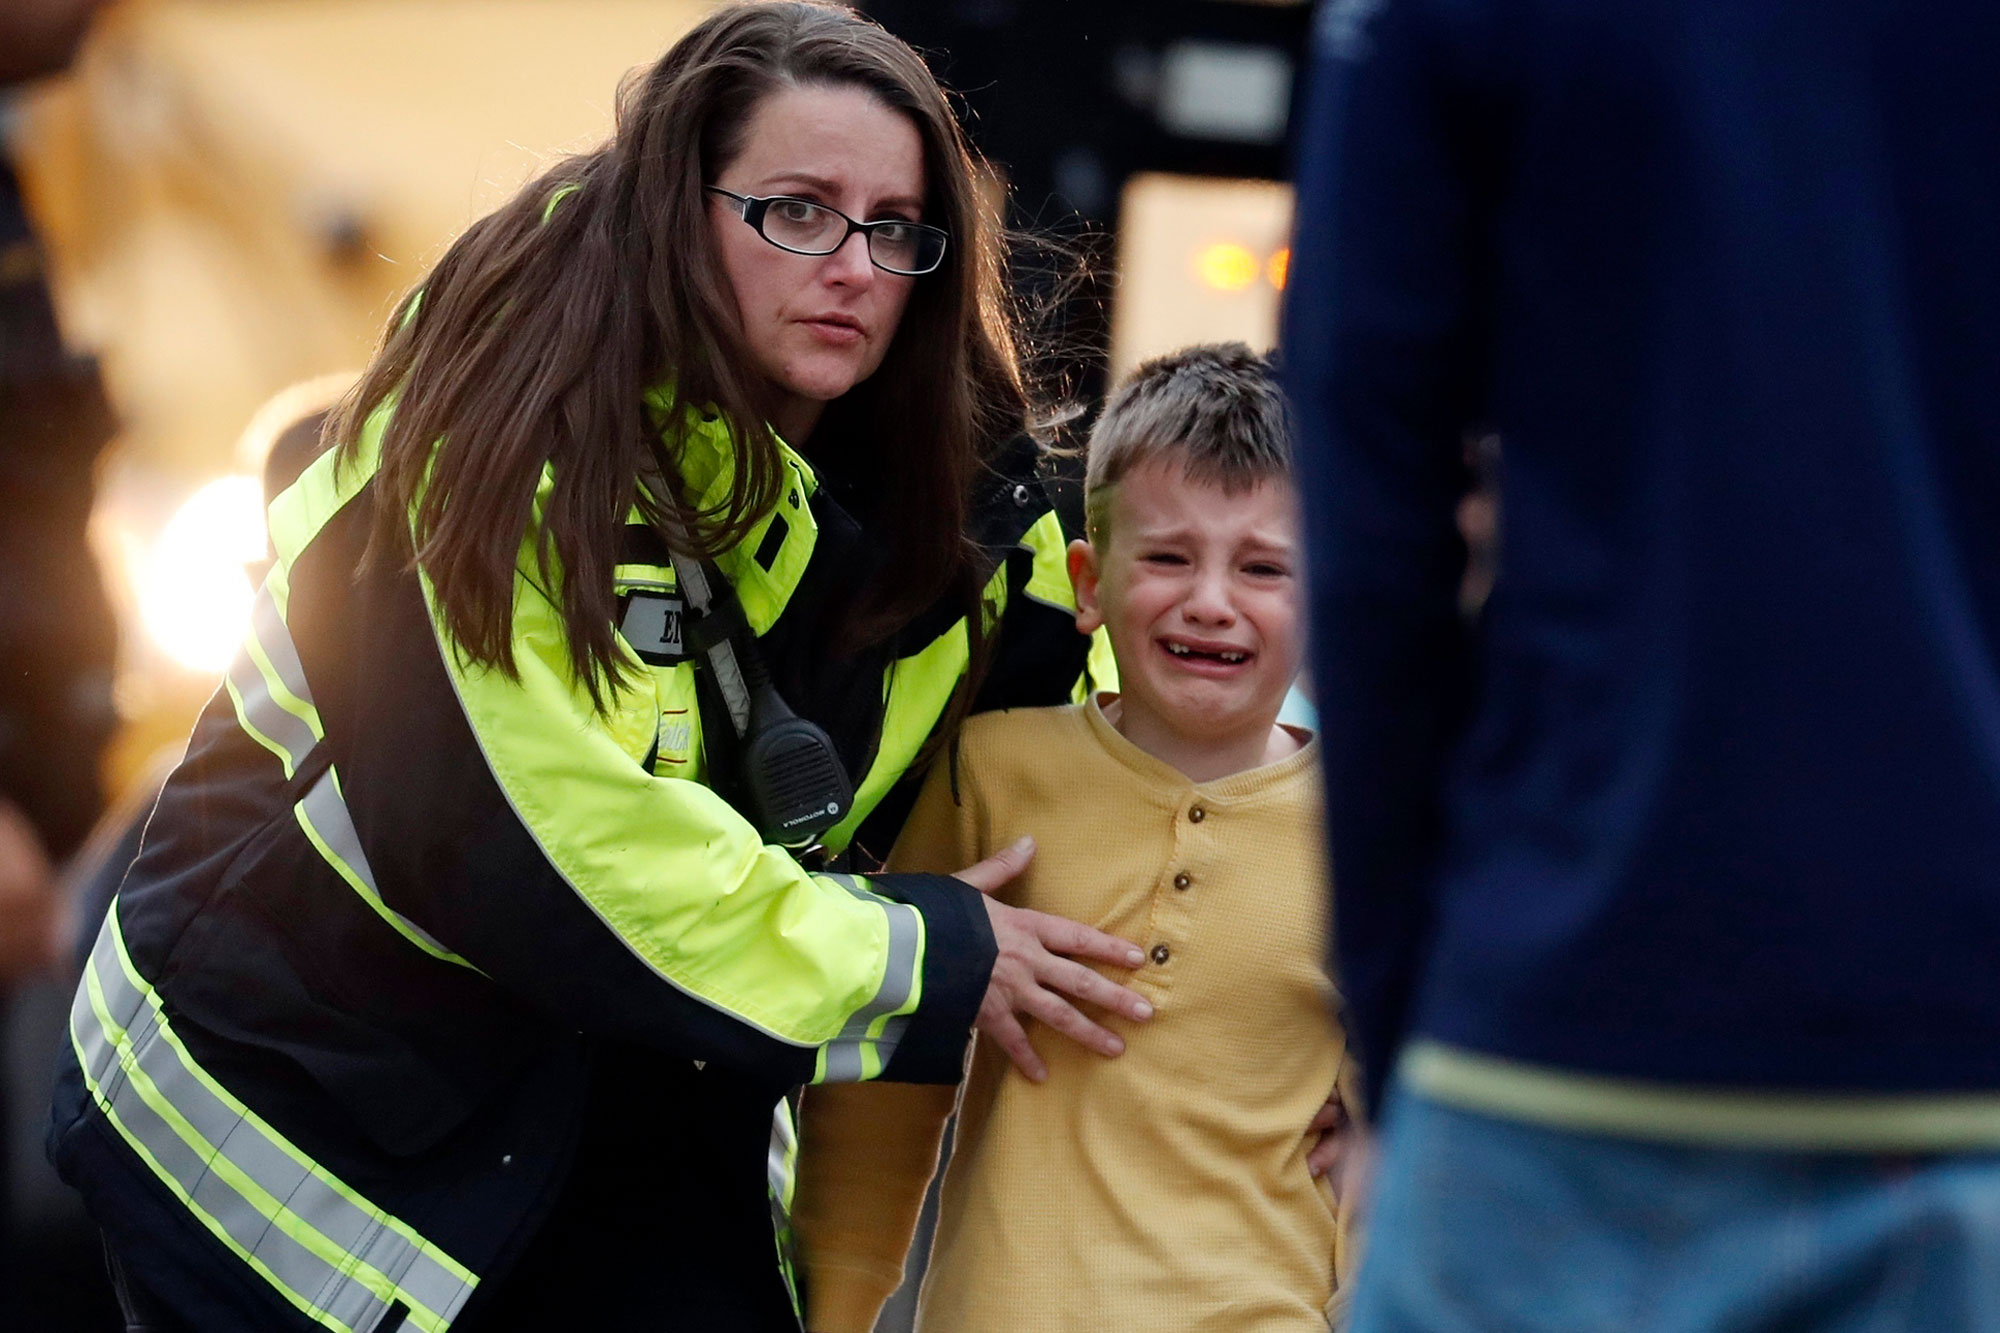 Photo: STEM School Shooting 6 | Tuesday Rec Center Parent Pickup - AP